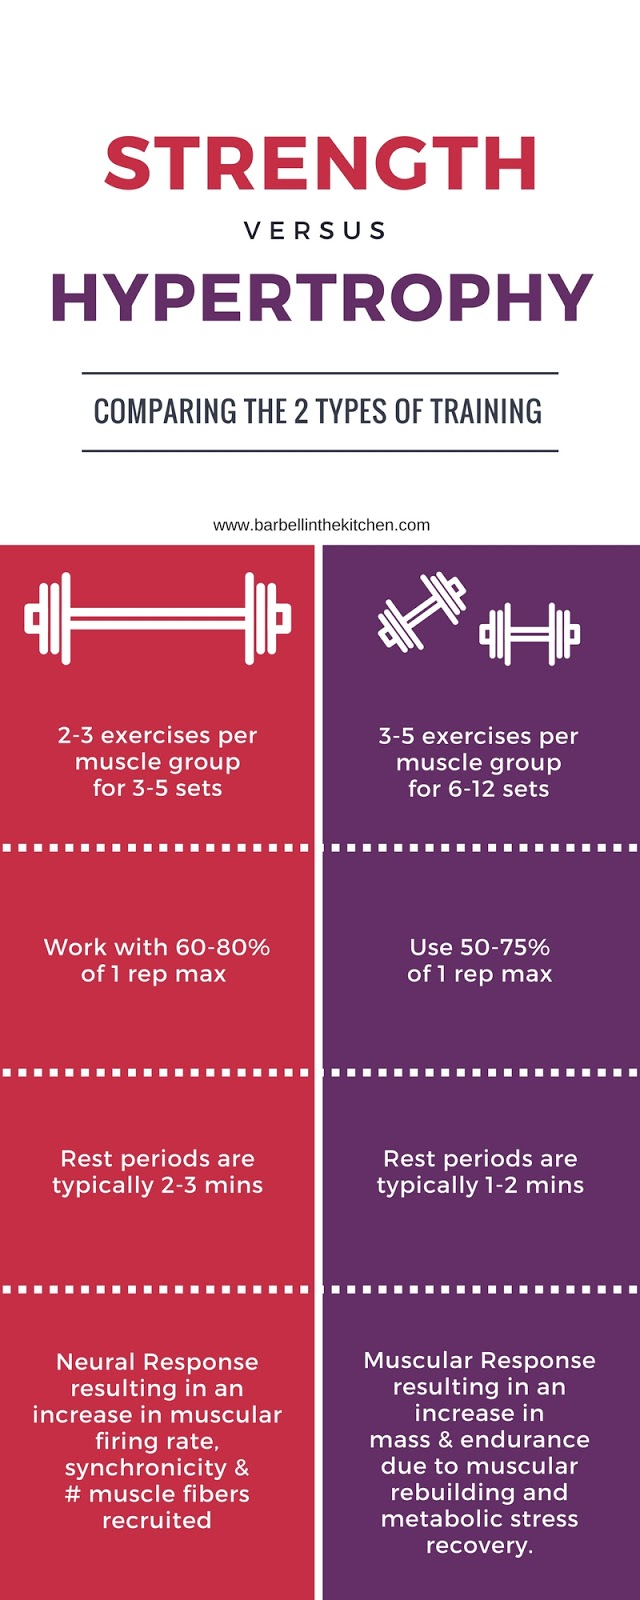 Barbell in the Kitchen: Hypertrophy vs Strength Training